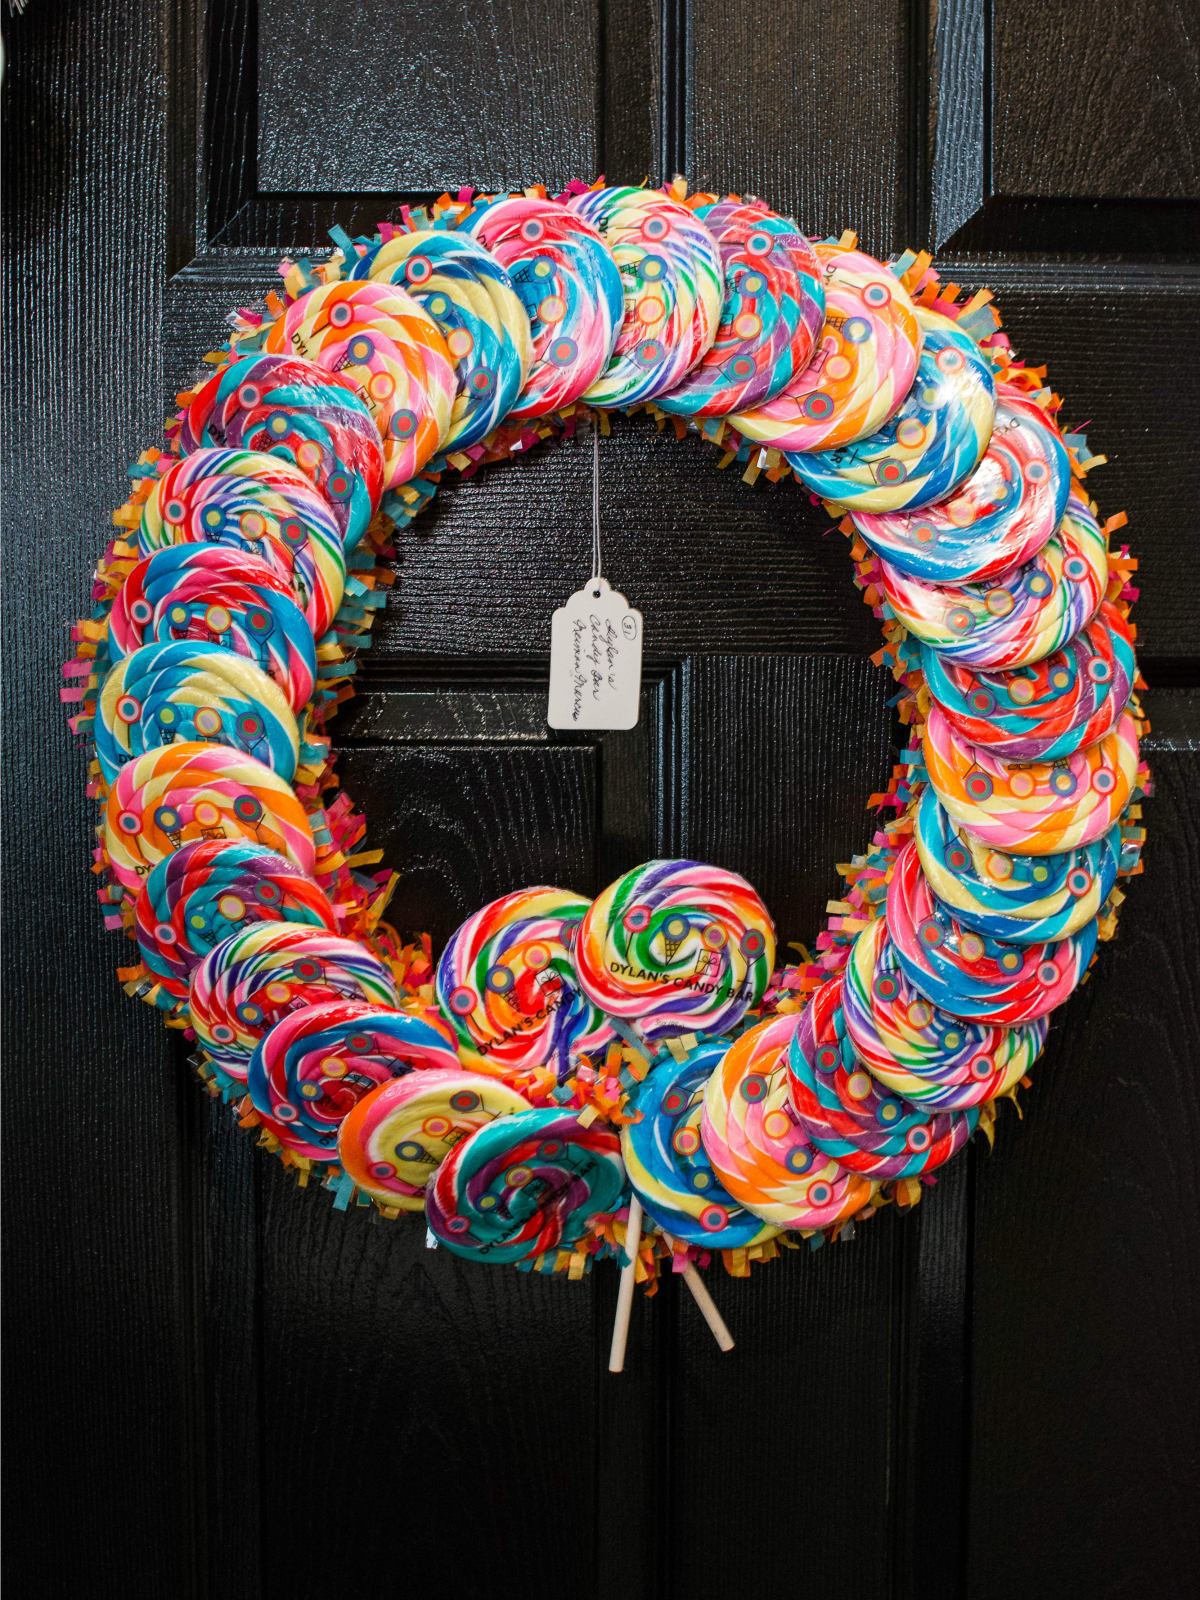 Dylan's Candy Bar Neiman Marcus wreath